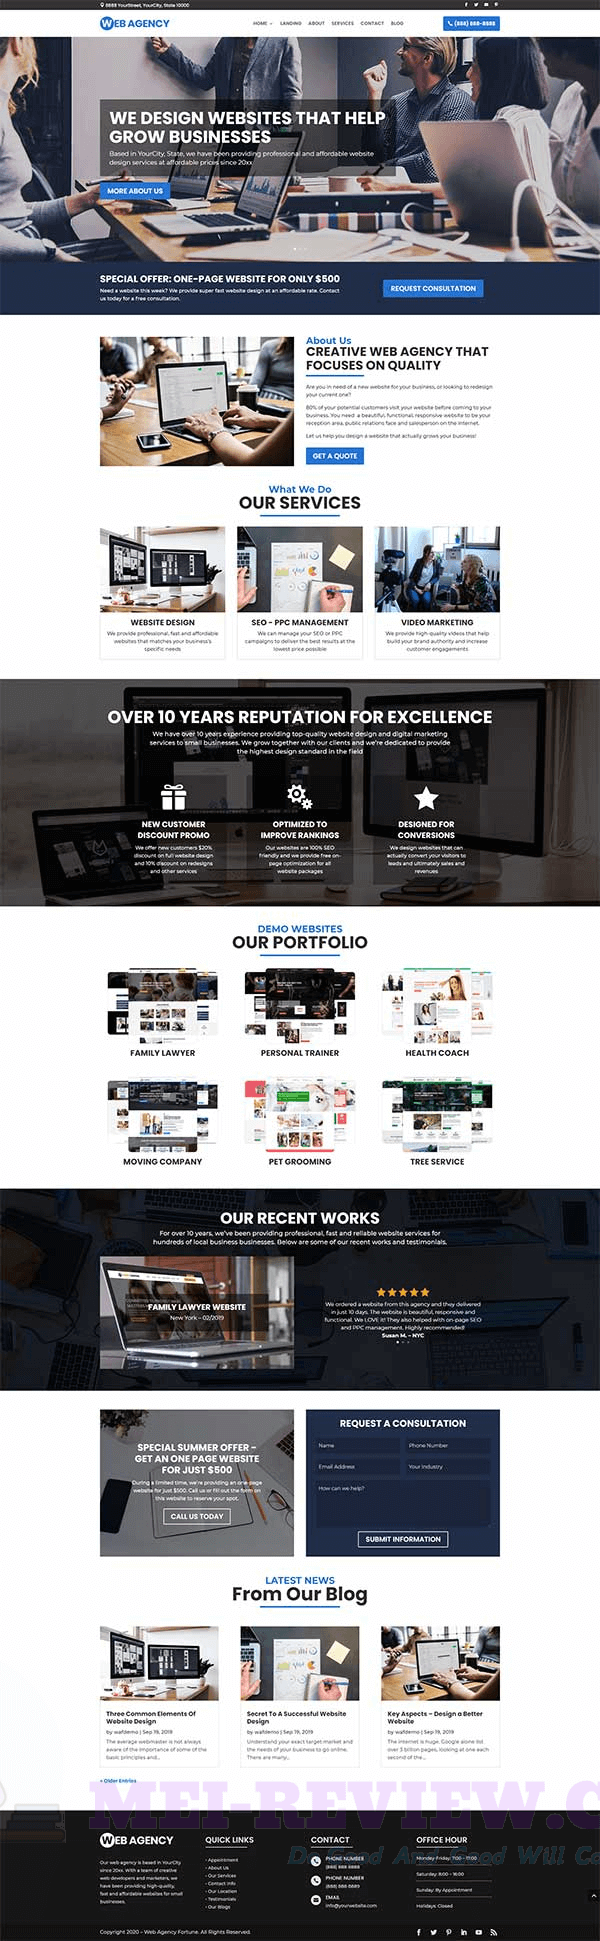 Web-Agency-Fortune-Vol-4-feature-4-Your-Agency-Website